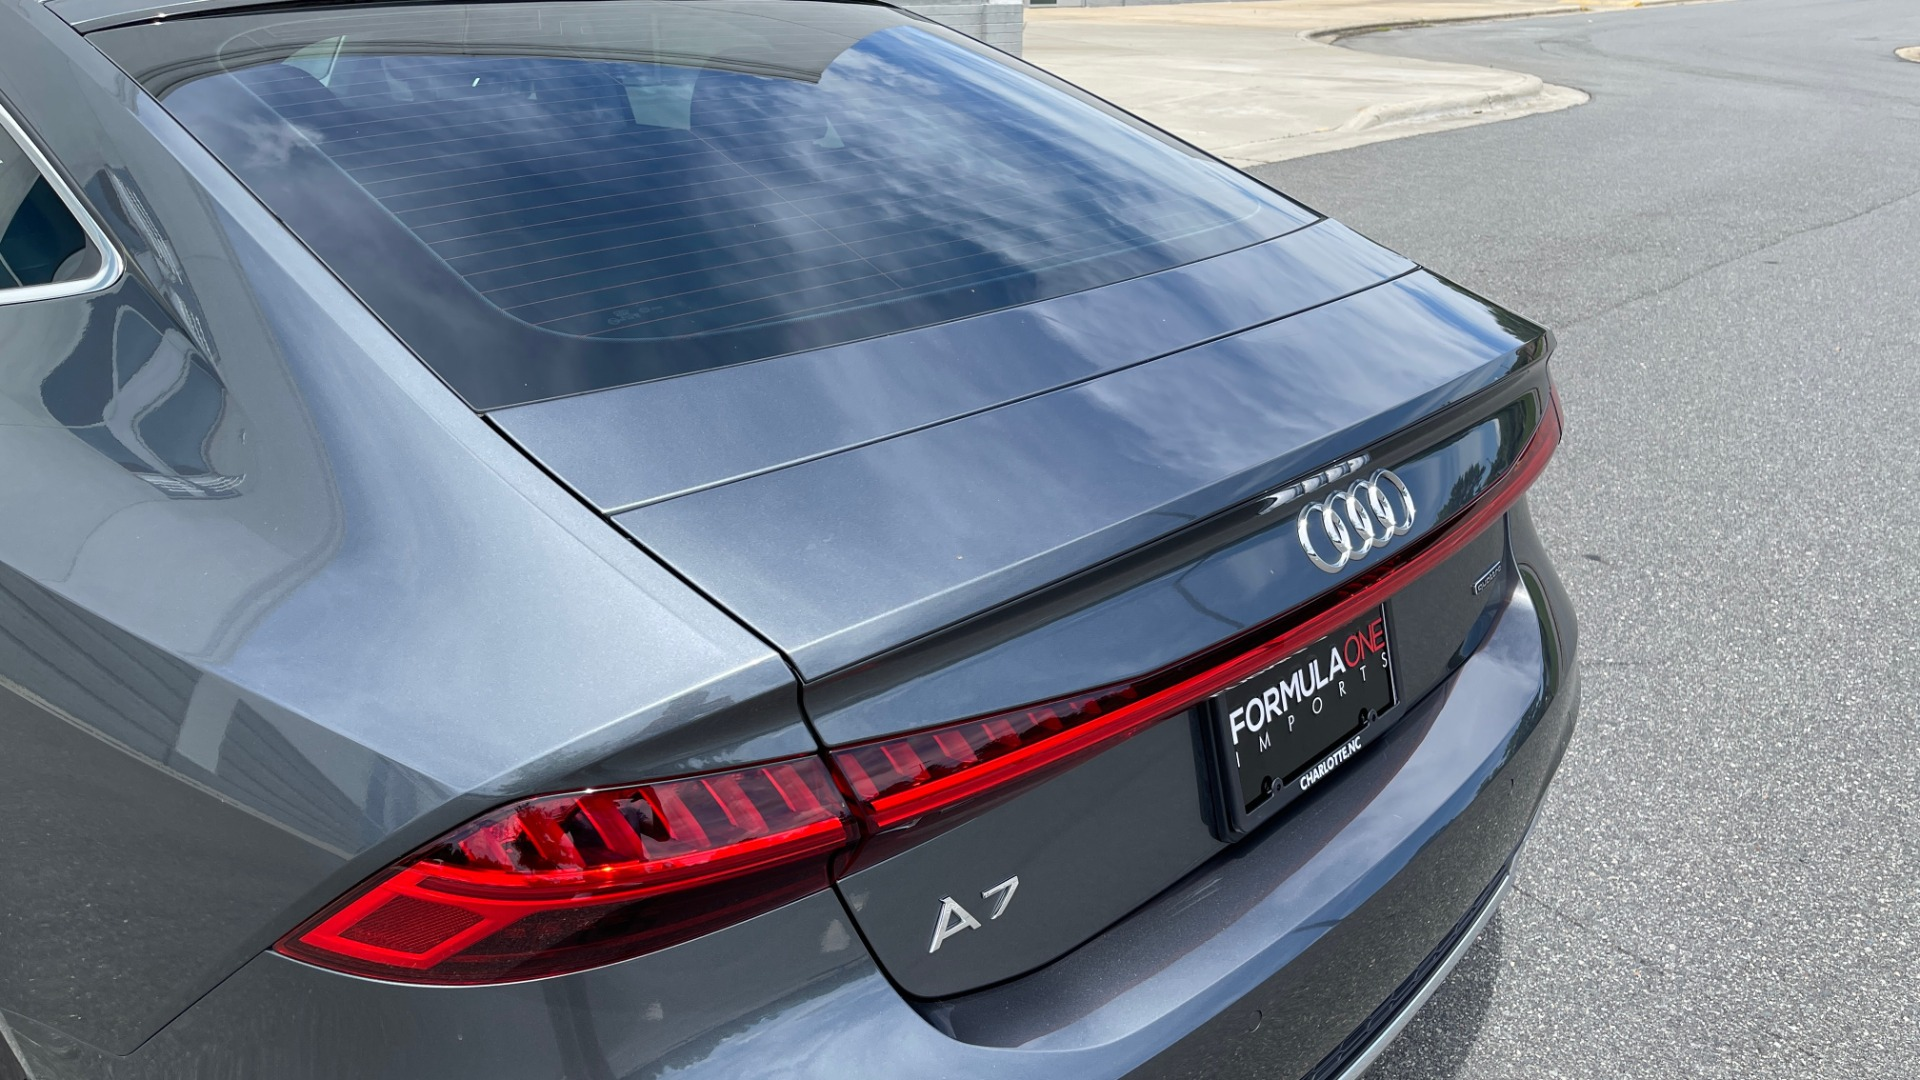 Used 2019 Audi A7 PRESTIGE 55 TFSI 3.0T / NAV / B&O SND / SUNROOF / S-LINE / 21IN WHLS / REAR for sale $66,995 at Formula Imports in Charlotte NC 28227 28